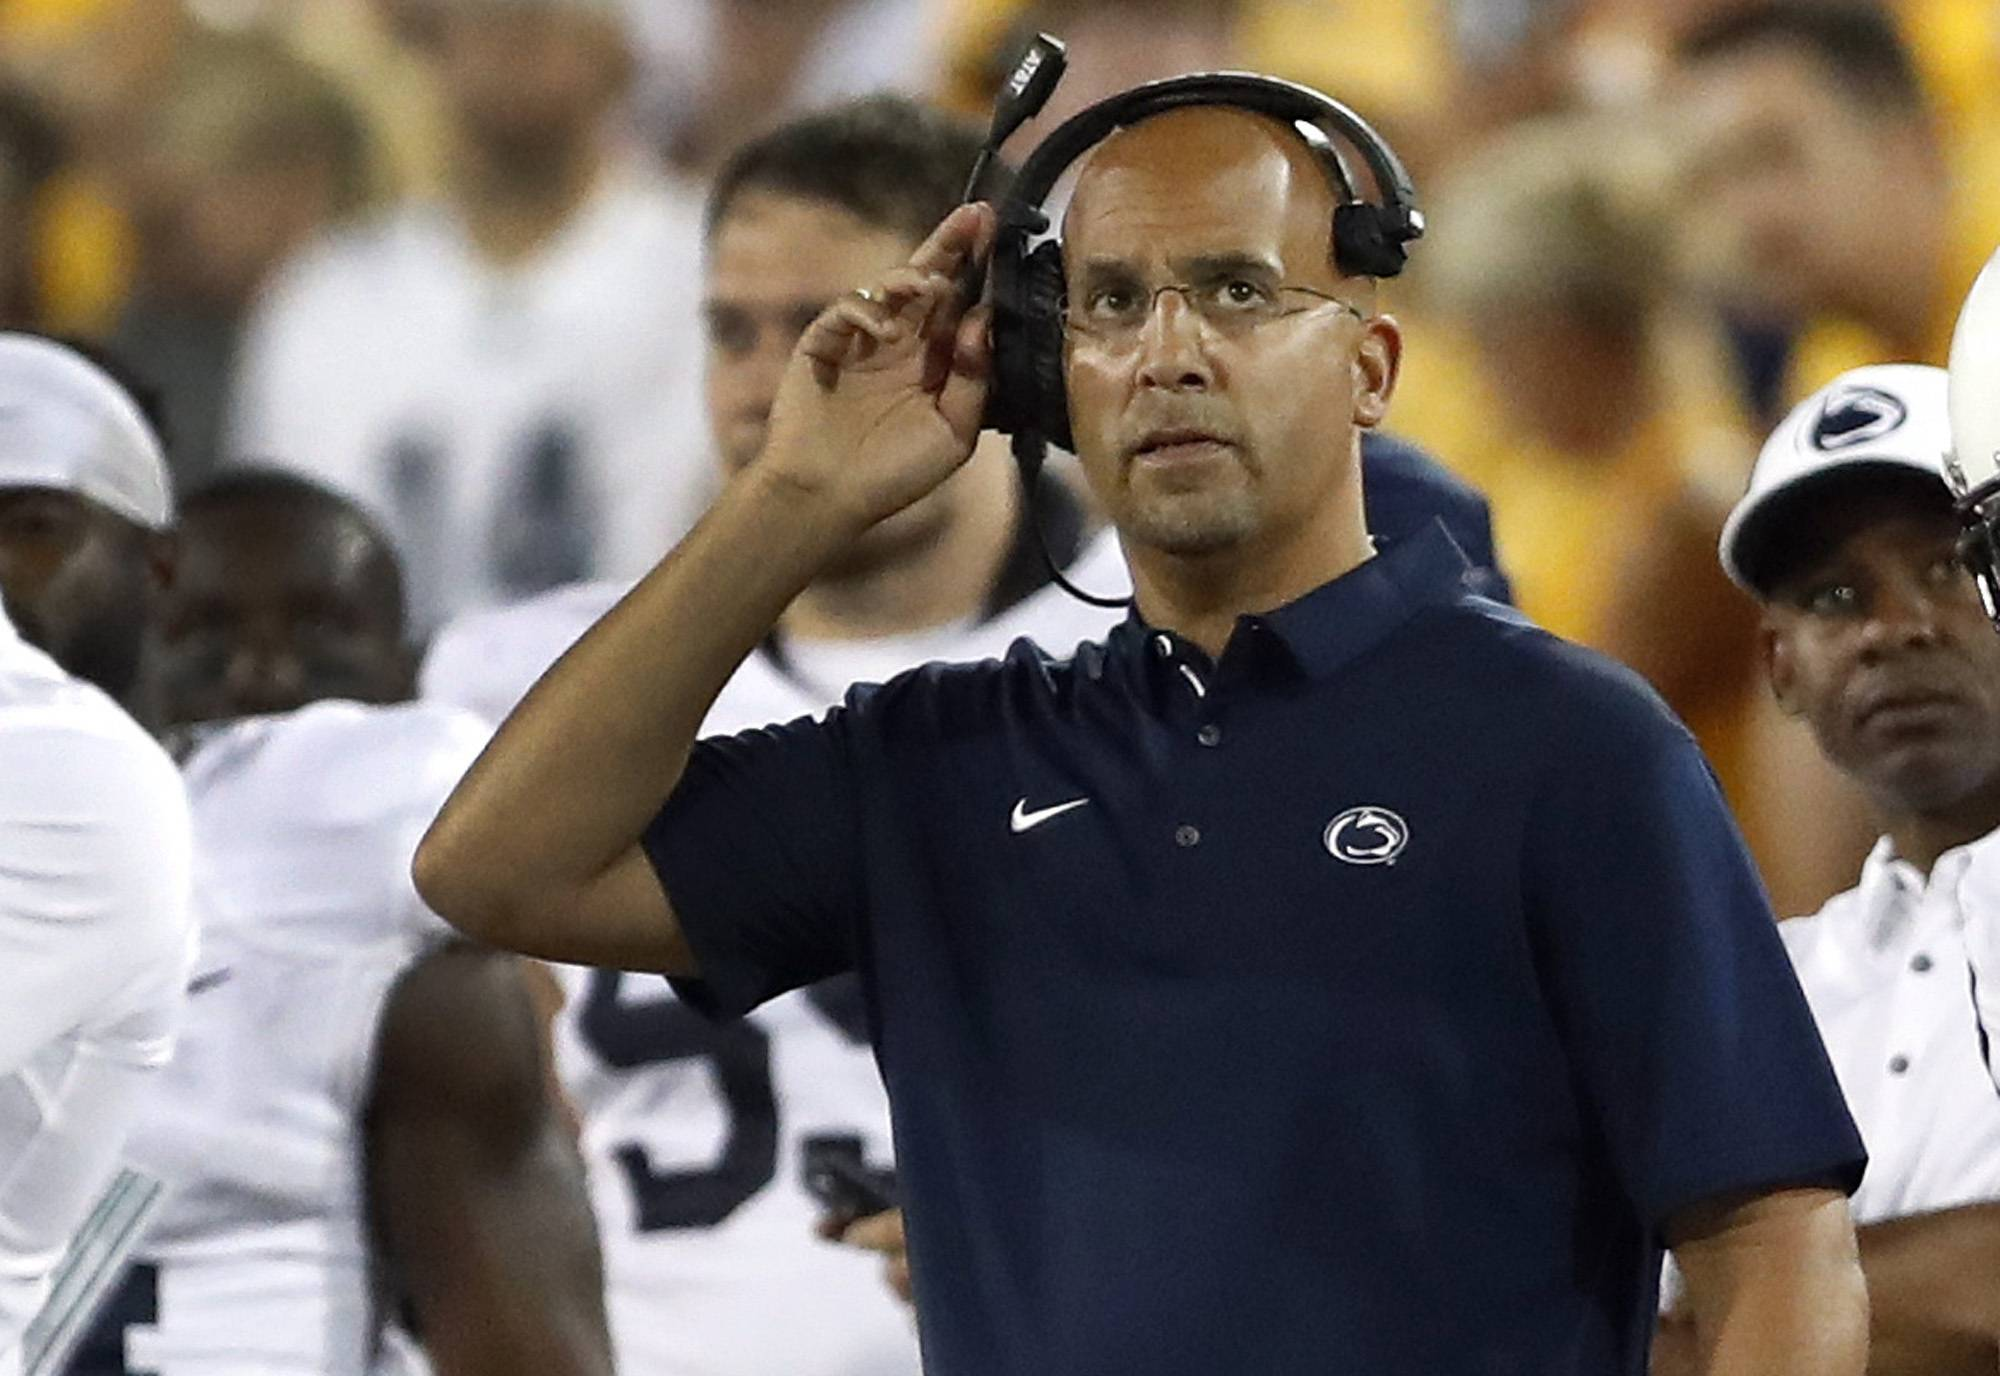 FILE - In this Saturday, Sept. 23, 2017 file photo,  Penn State head coach James Franklin watches from the sidelines during the second half of an NCAA college football game against Iowa in Iowa City, Iowa. Penn State coach James Franklin sees the talent Northwestern has and the success the Wildcats have experienced under Pat Fitzgerald.That's why he sees potential trouble for the Nittany Lions. No. 4 Penn State looks to remain unbeaten and in line for a playoff spot when it visits Northwestern on Saturday, Oct. 7, 2017.